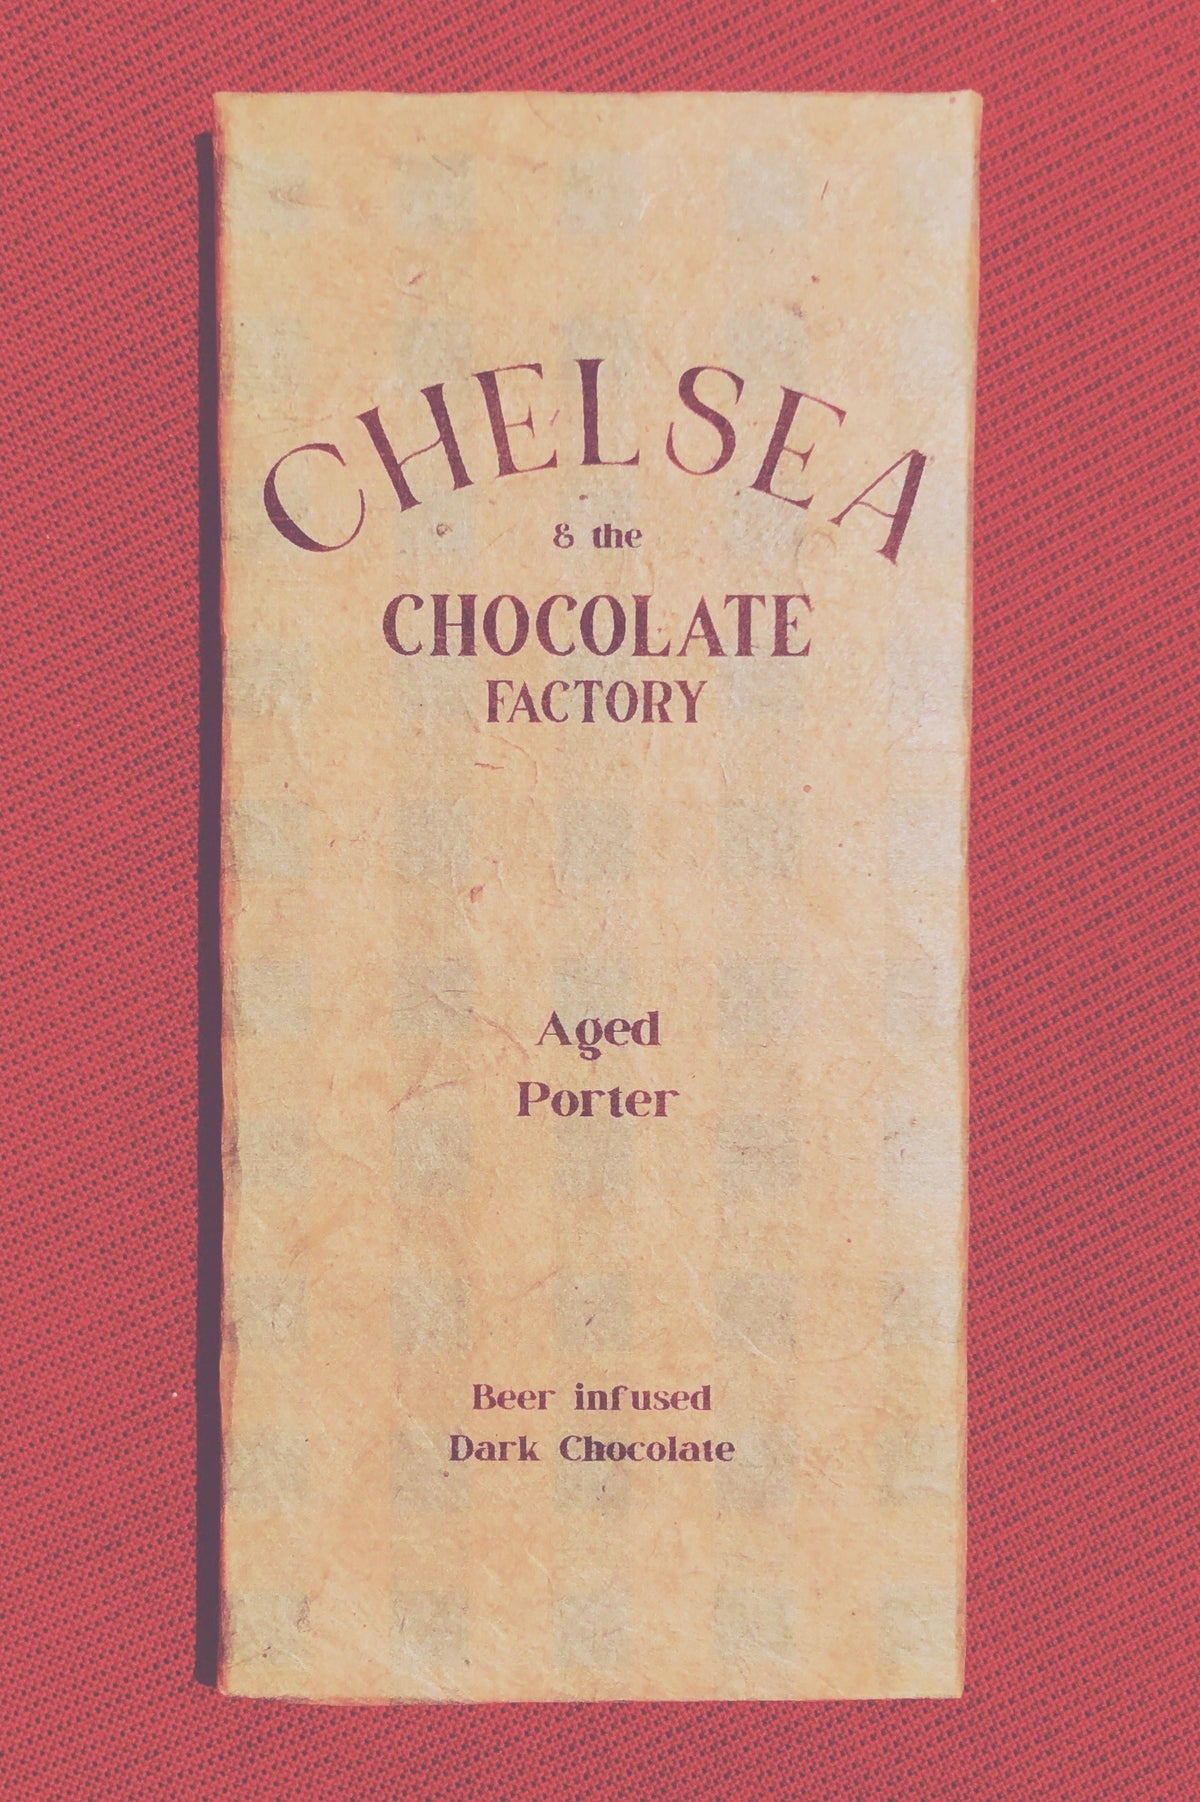 Chelsea and the Chocolate Factory Limited Release Aged Porter Beer infused dark chocolate